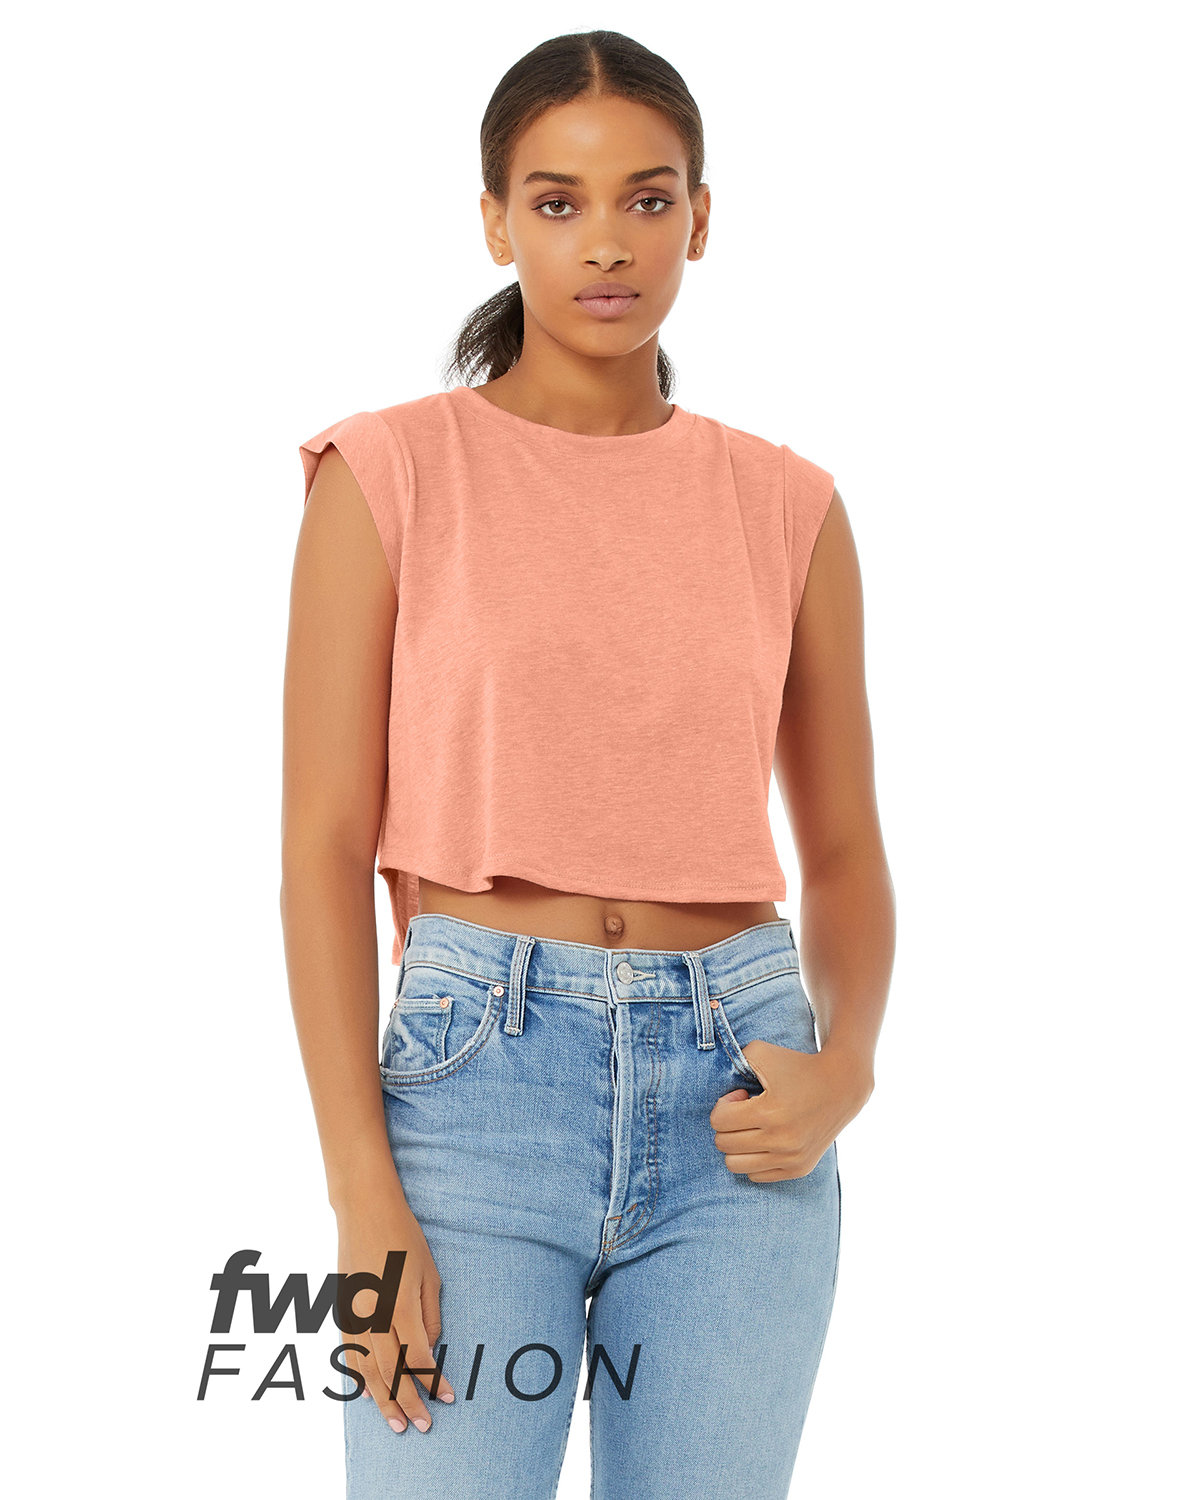 Bella + Canvas FWD Fashion Ladies' Festival Cropped Tank SUNSET TRIBLEND